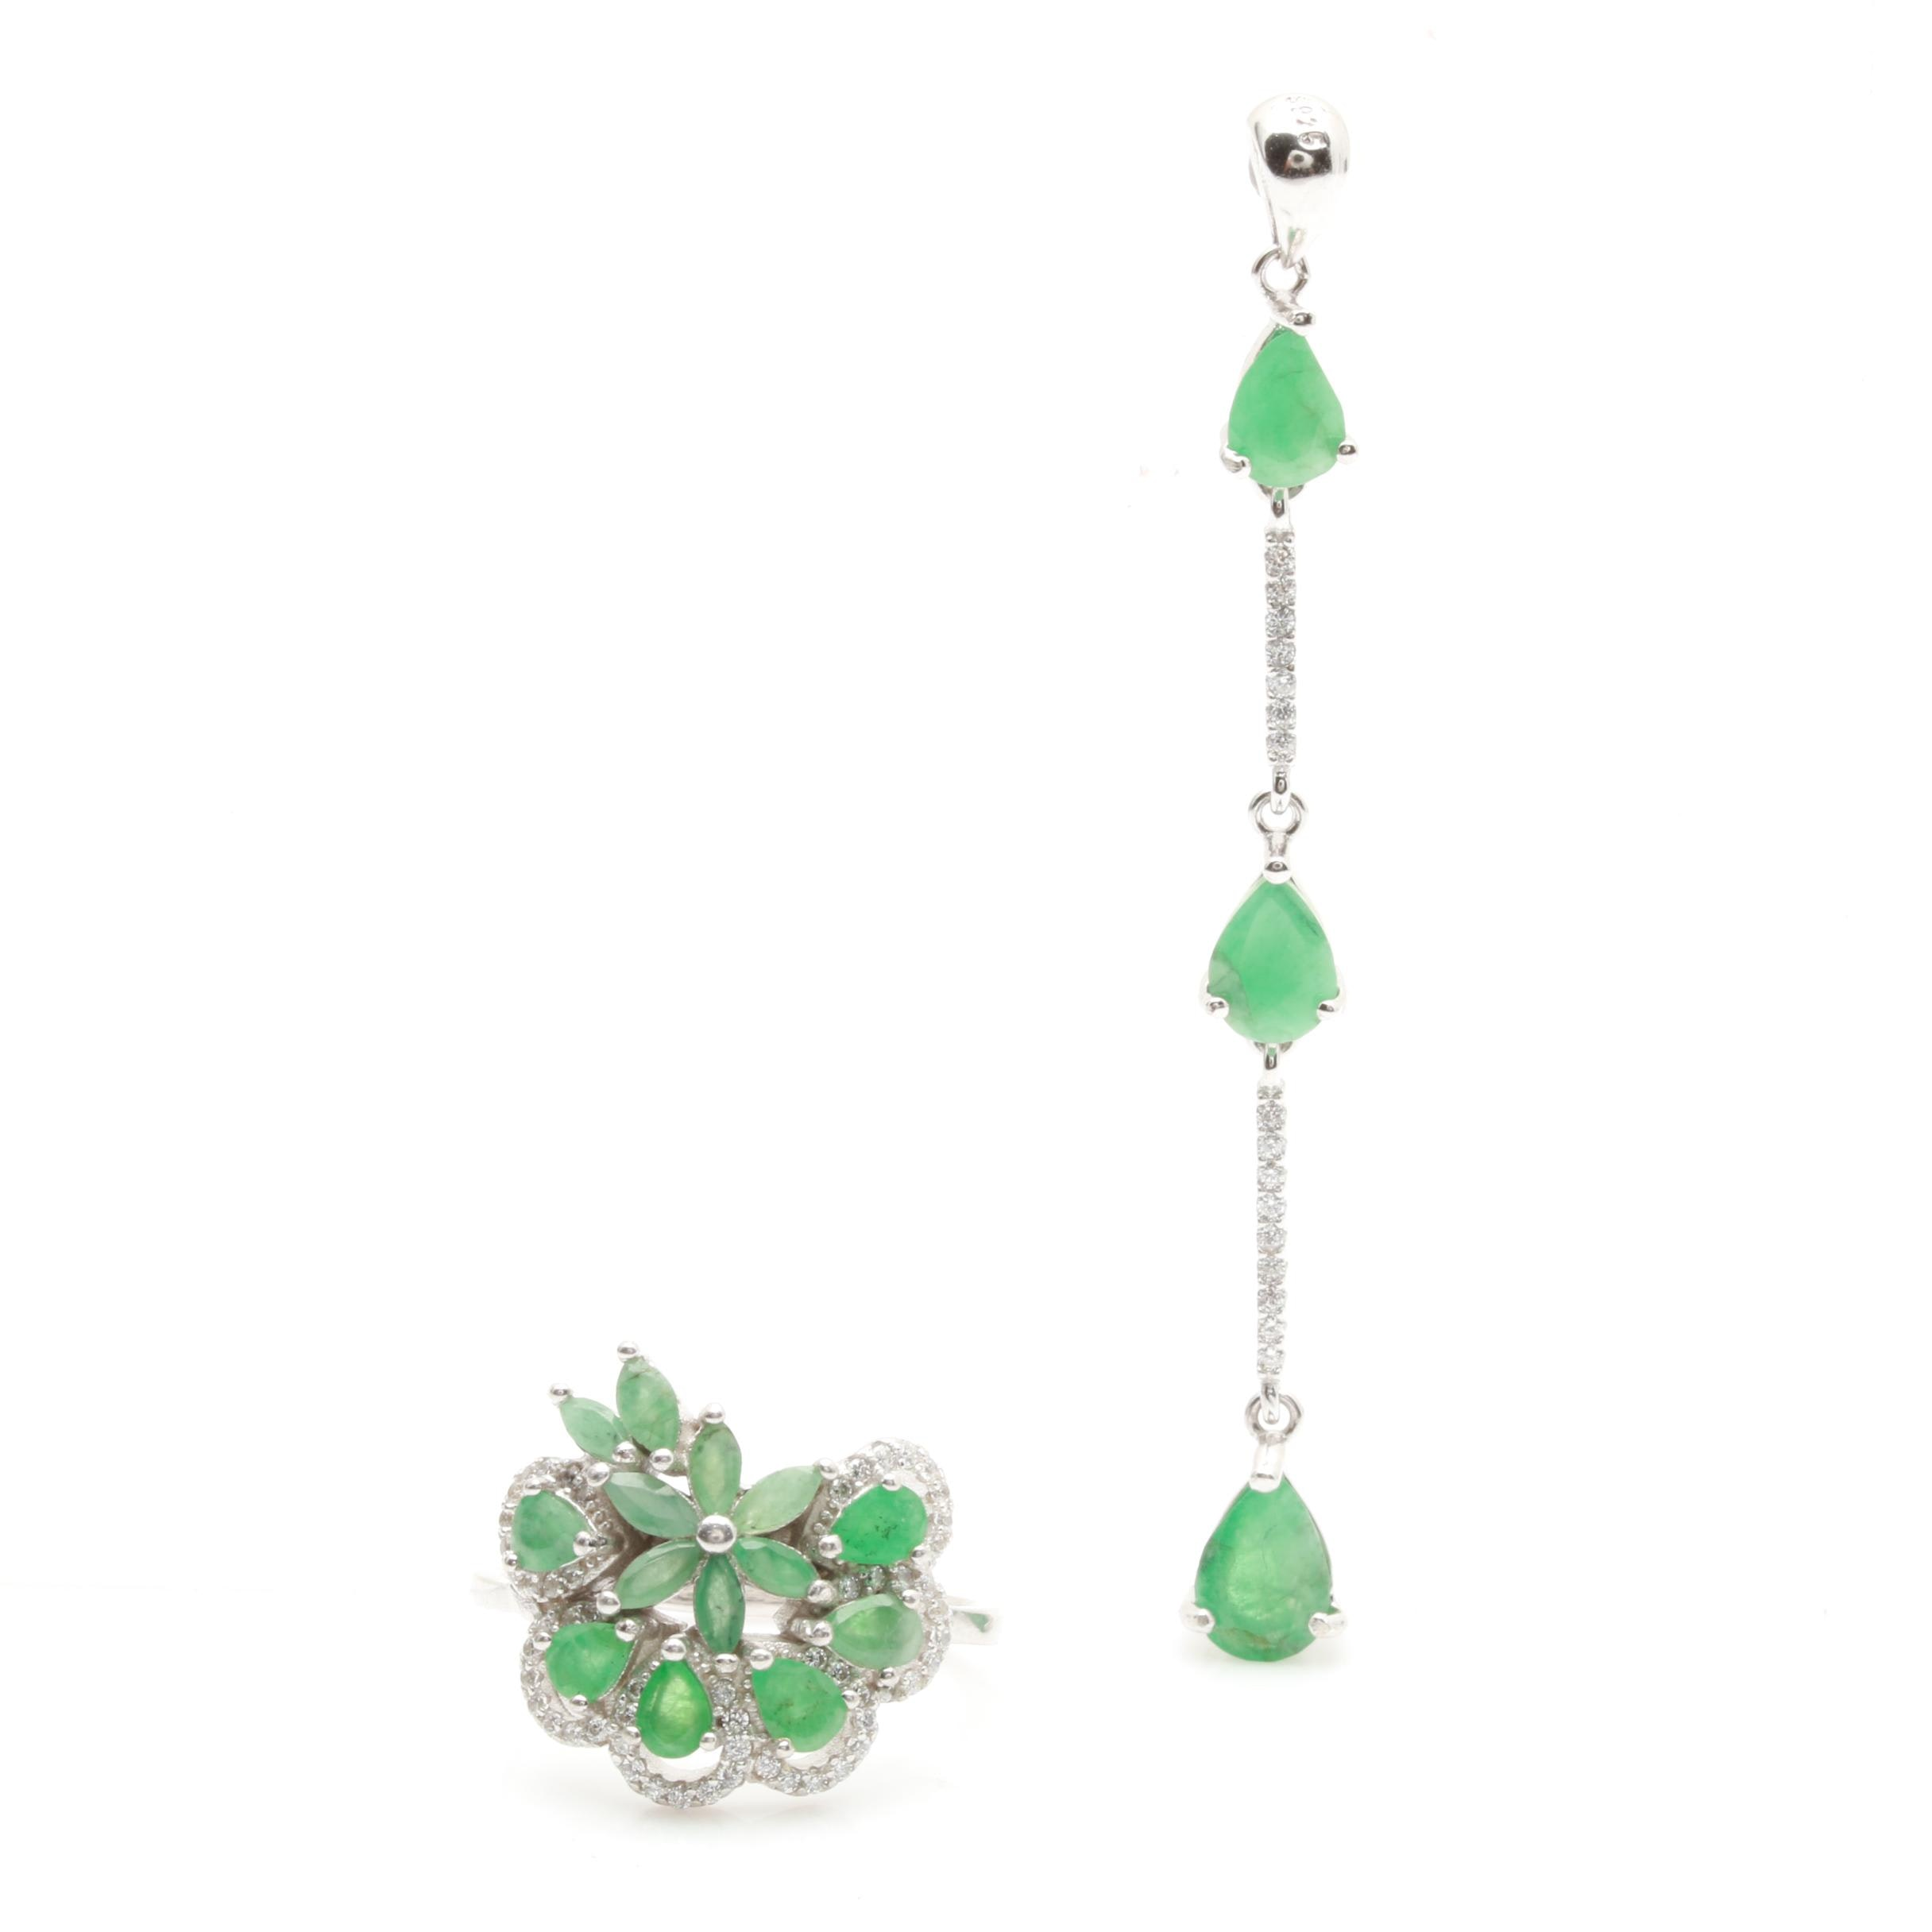 Sterling Silver Green Beryl and Cubic Zirconia Jewelry